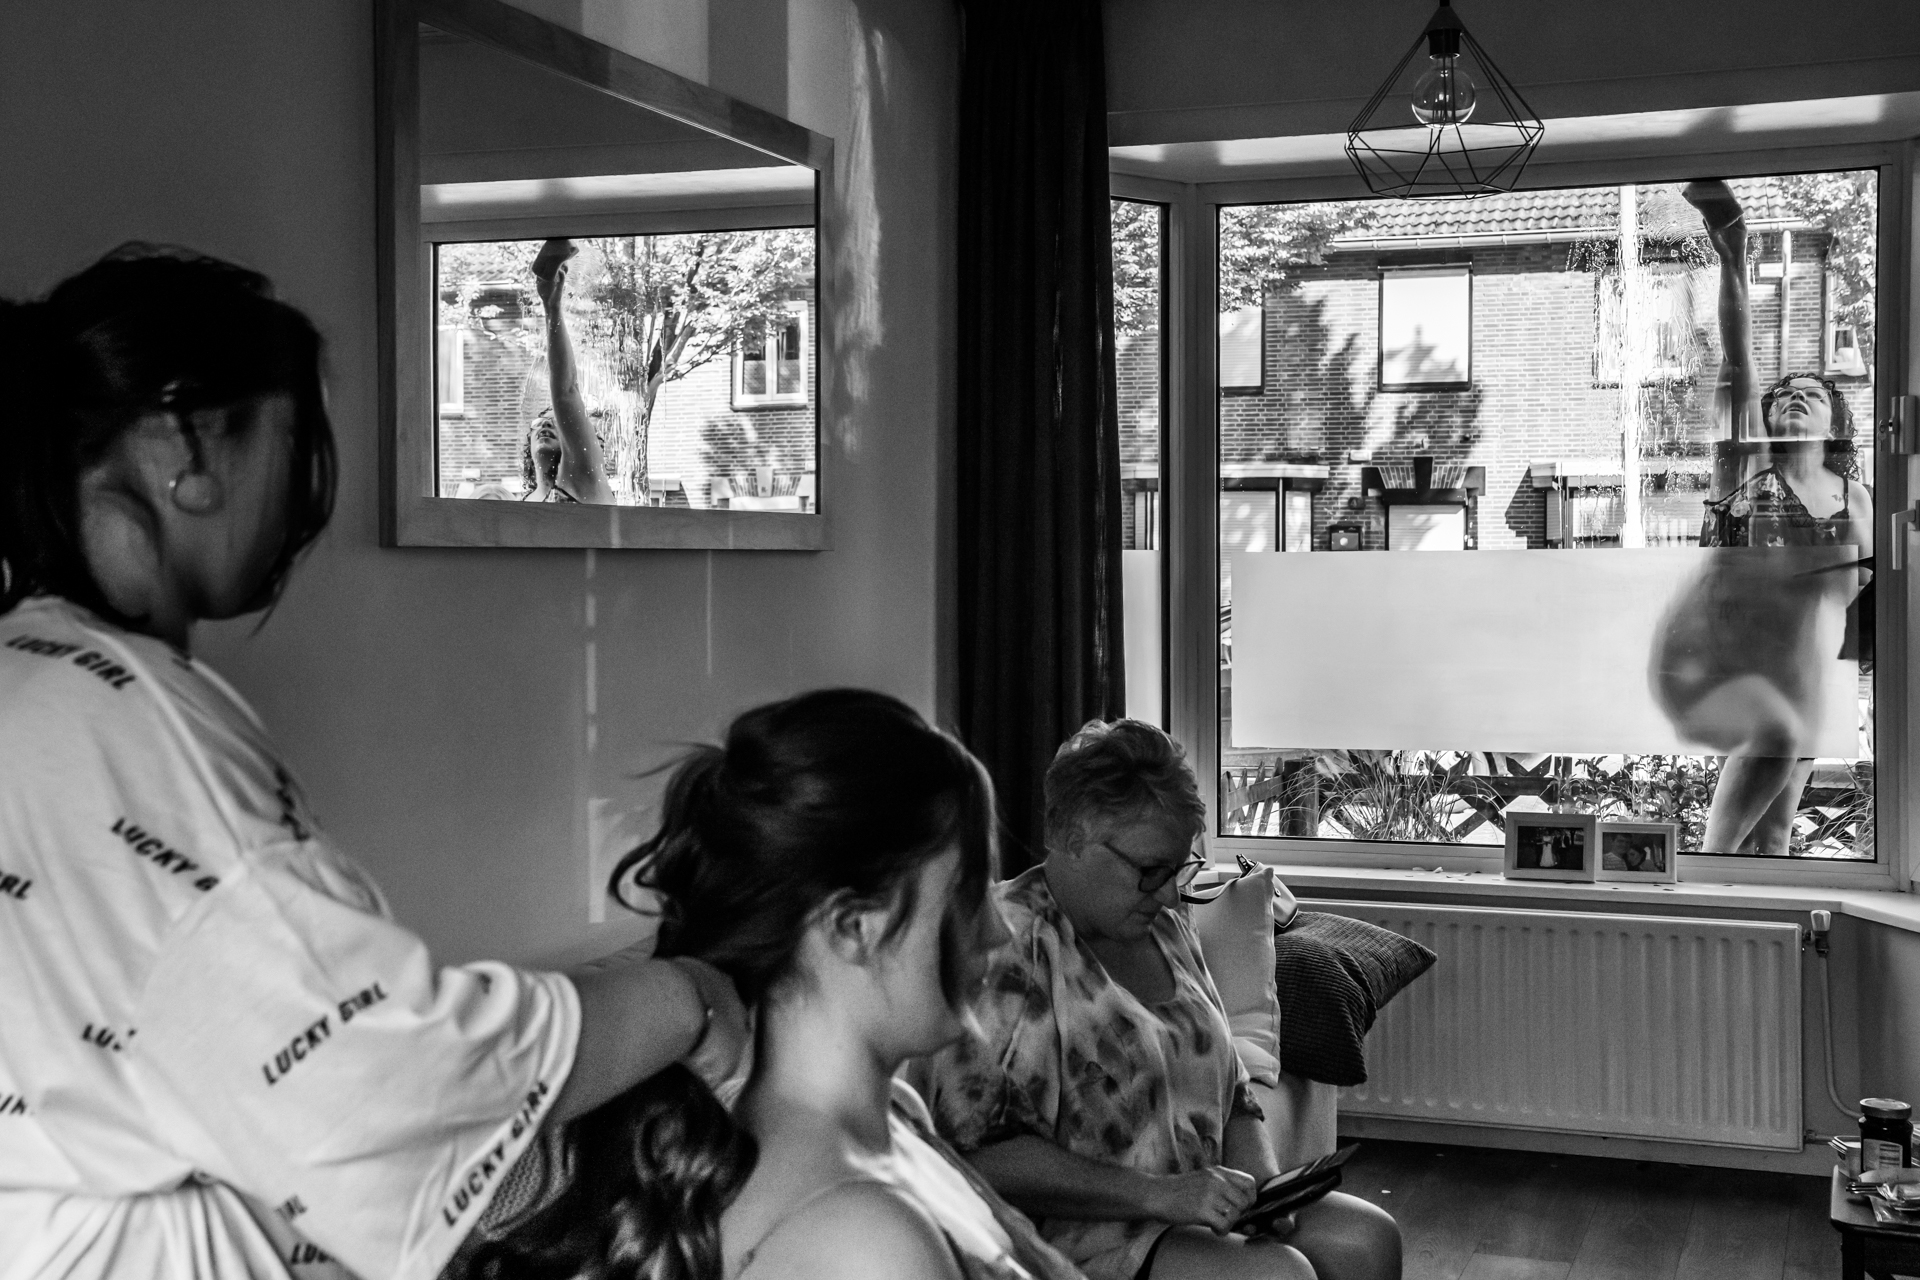 Elopement Photos from Breda City, Netherlands | The bride had forgotten to clean the window